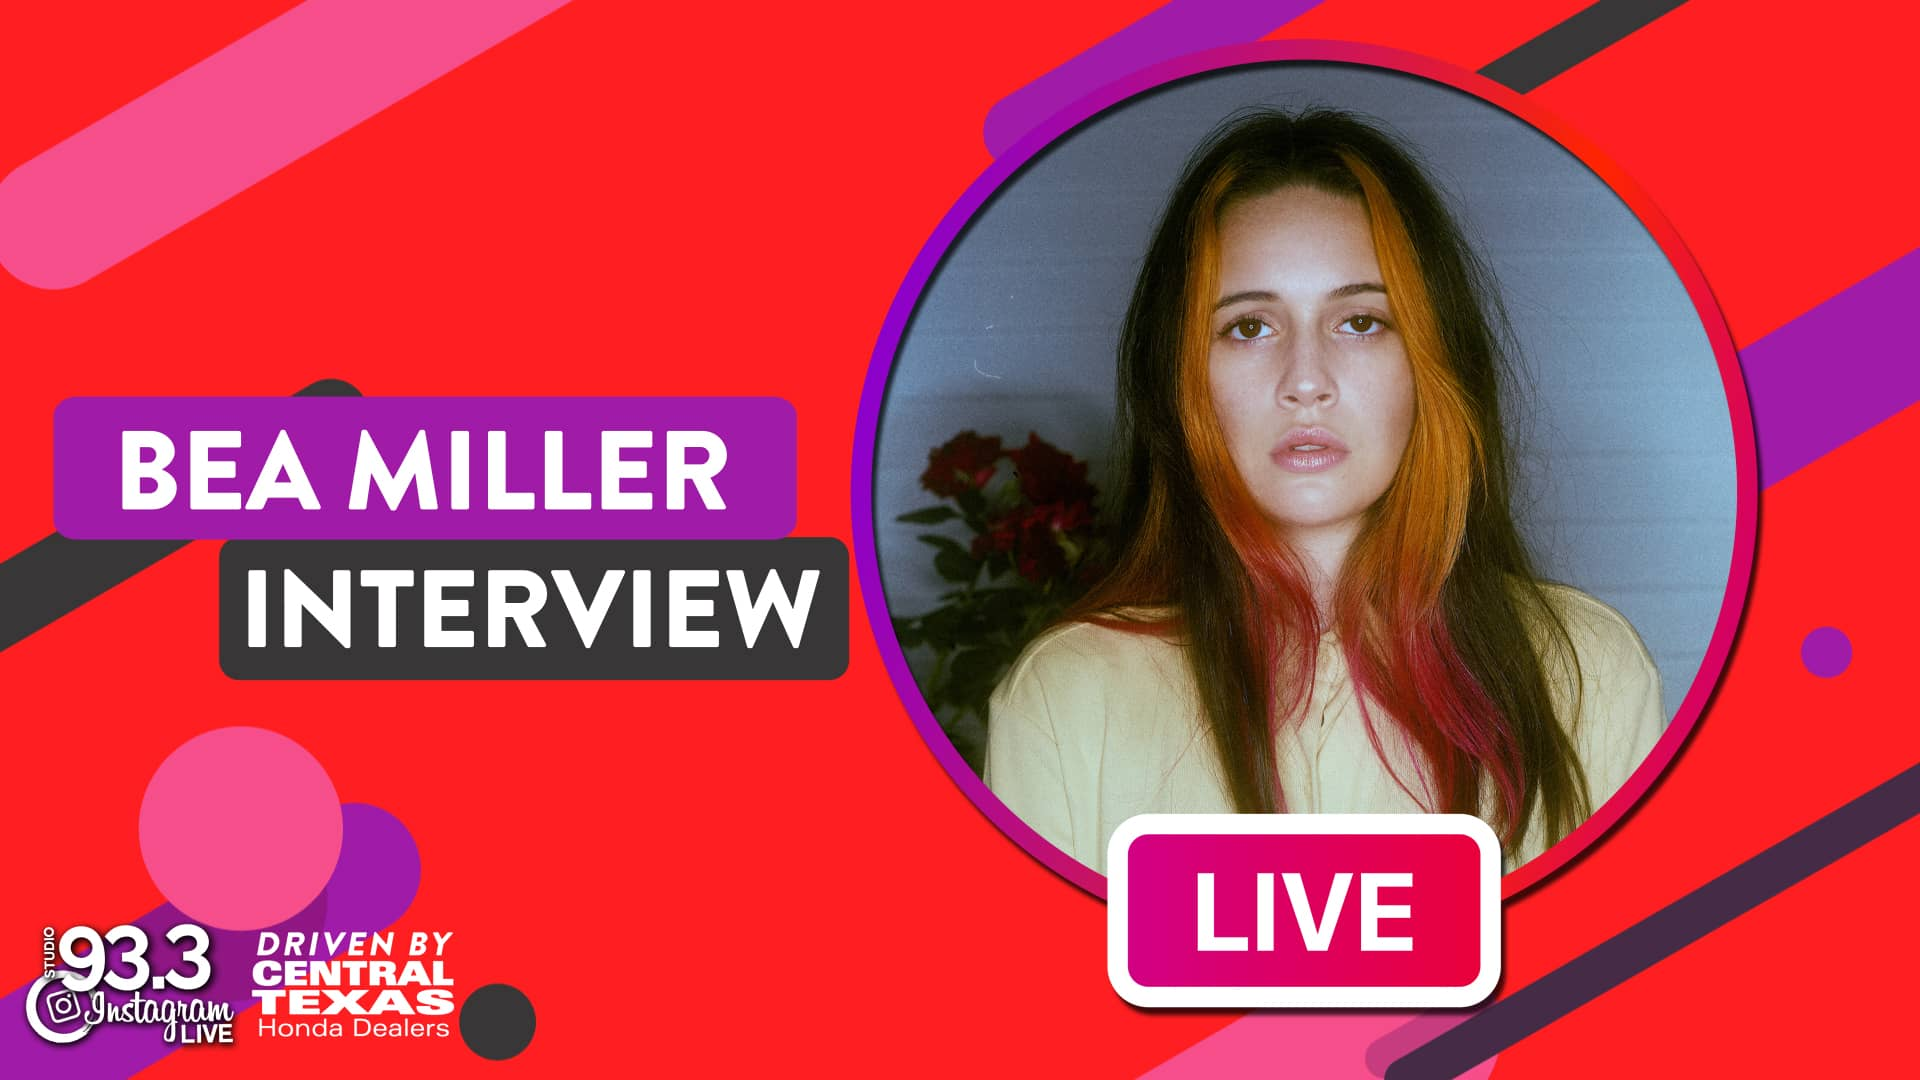 Lucy Live with Bea Miller